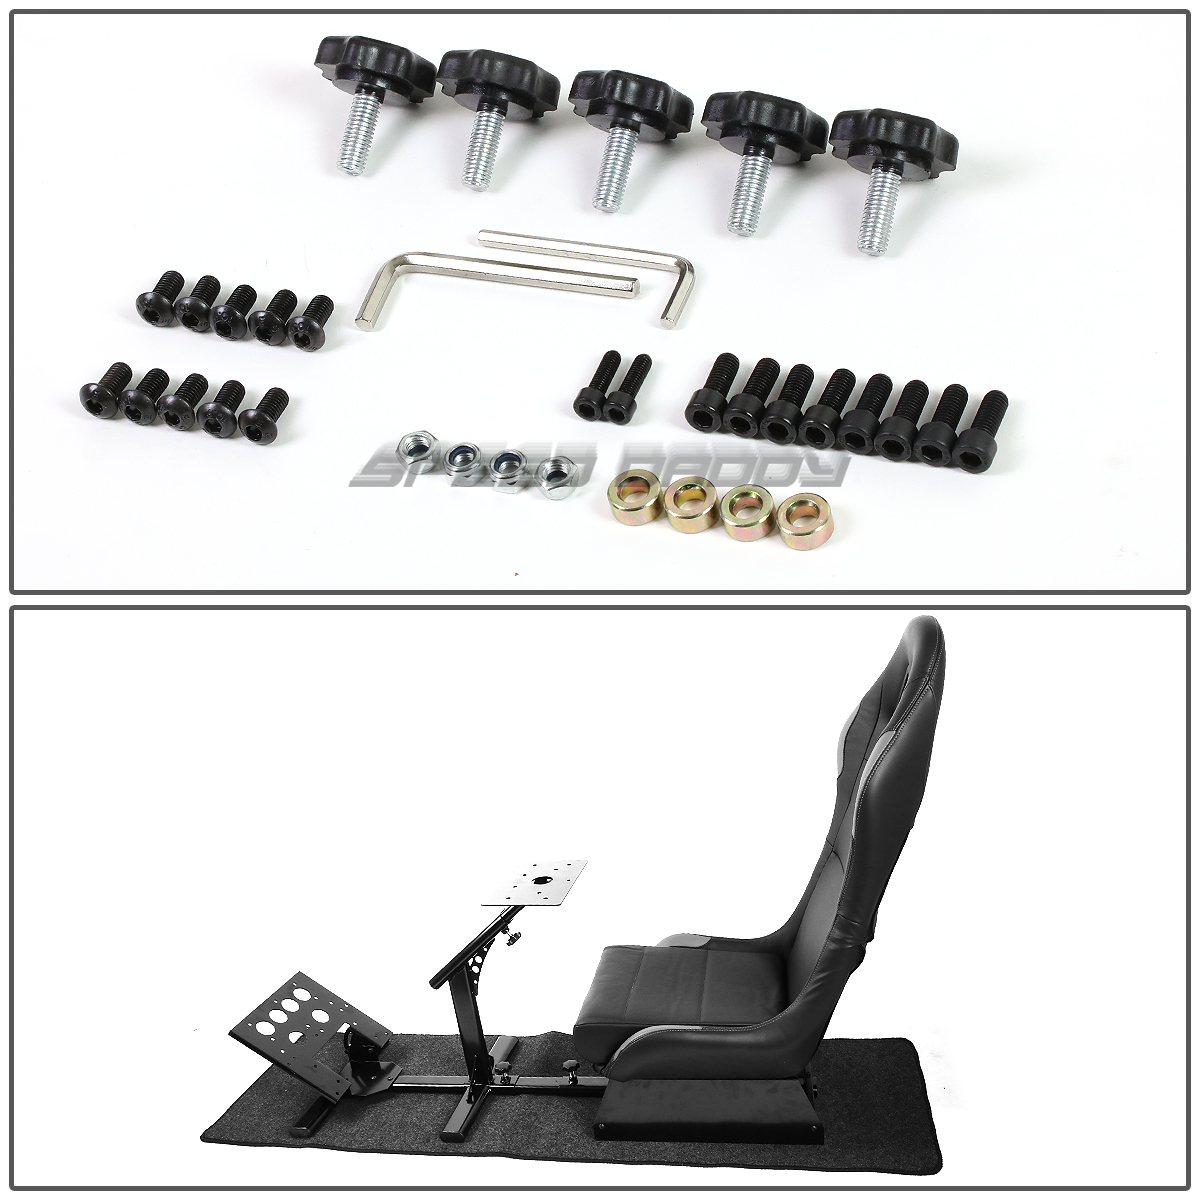 COCKPIT-DRIVING-SIMULATOR-RACING-SEAT-GAMING-CHAIR-W-GEAR-PEDALS-MOUNT-KIT